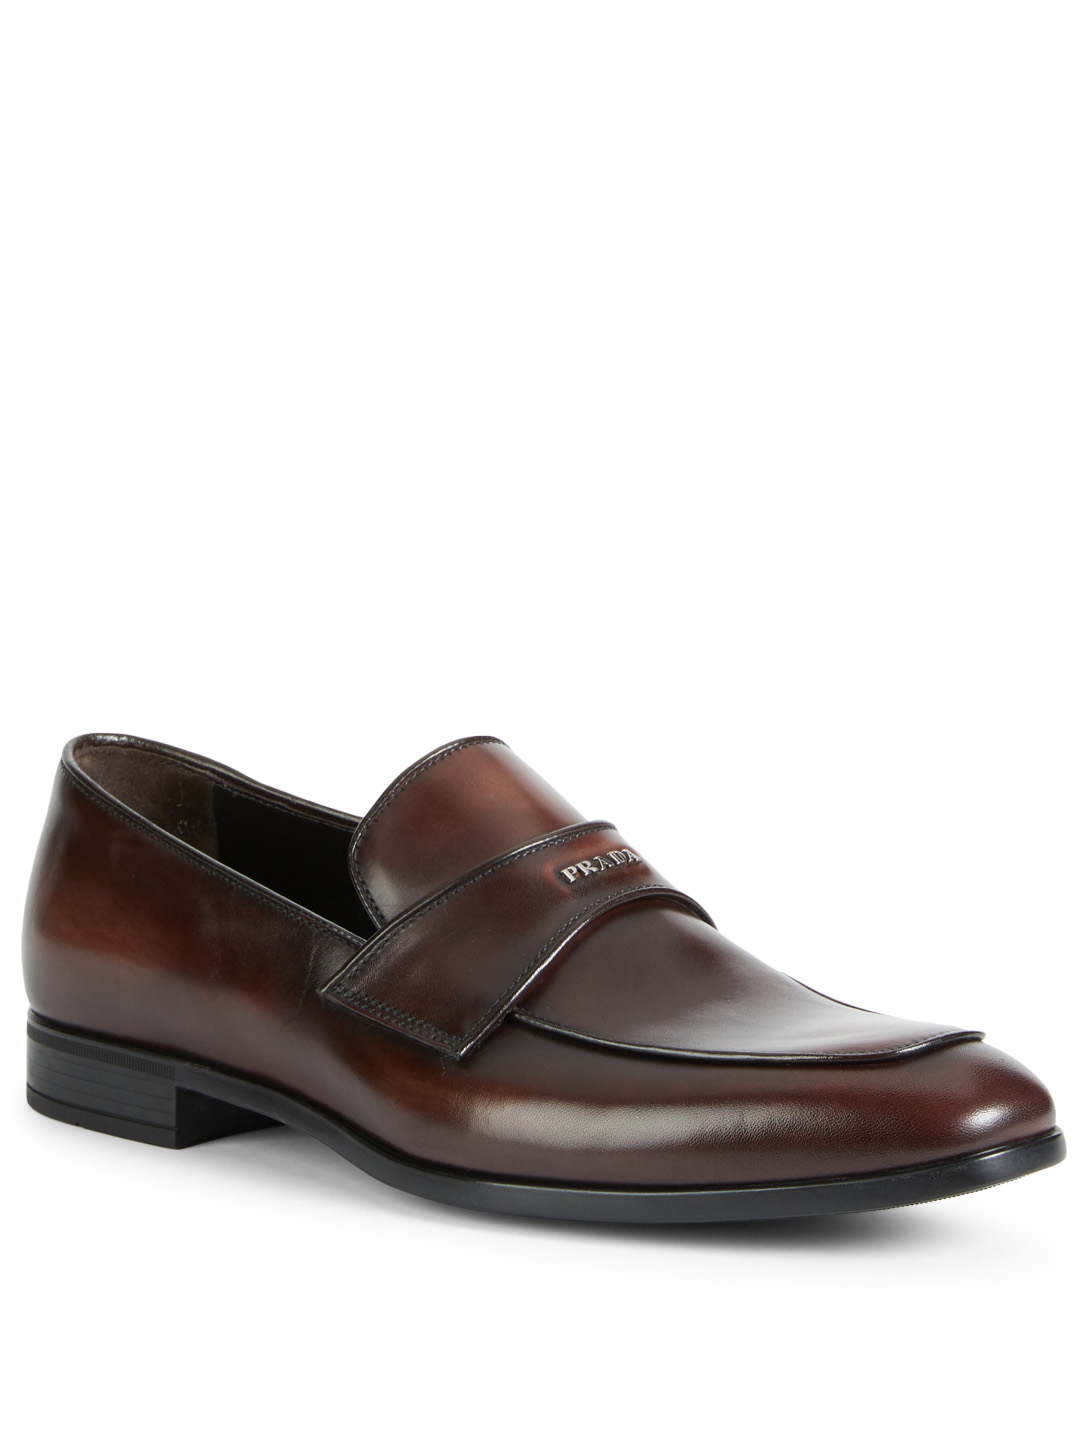 1ac52bf40bd hot prada apron toe penny loafers loafers 504572782 fa045 299e3  discount  code for prada vitello leather loafers mens brown 0ab53 8eaa8